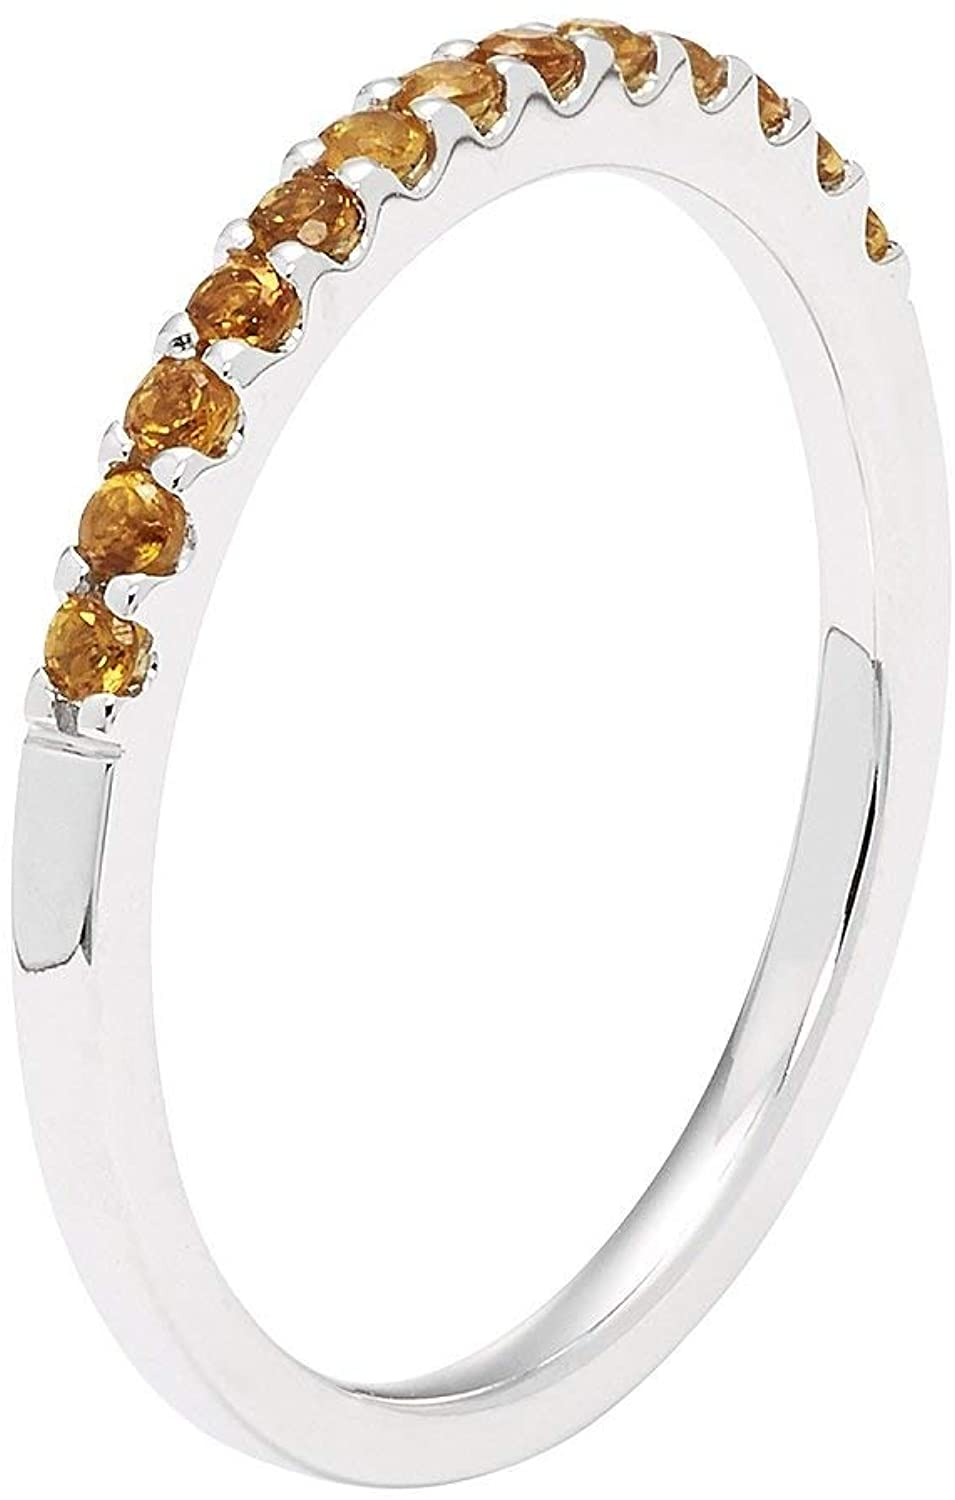 14K White Gold 1/5 Cttw Natural Citrine Stackable 2MM Wedding Anniversary Band Ring - November Birthstone, Size 5